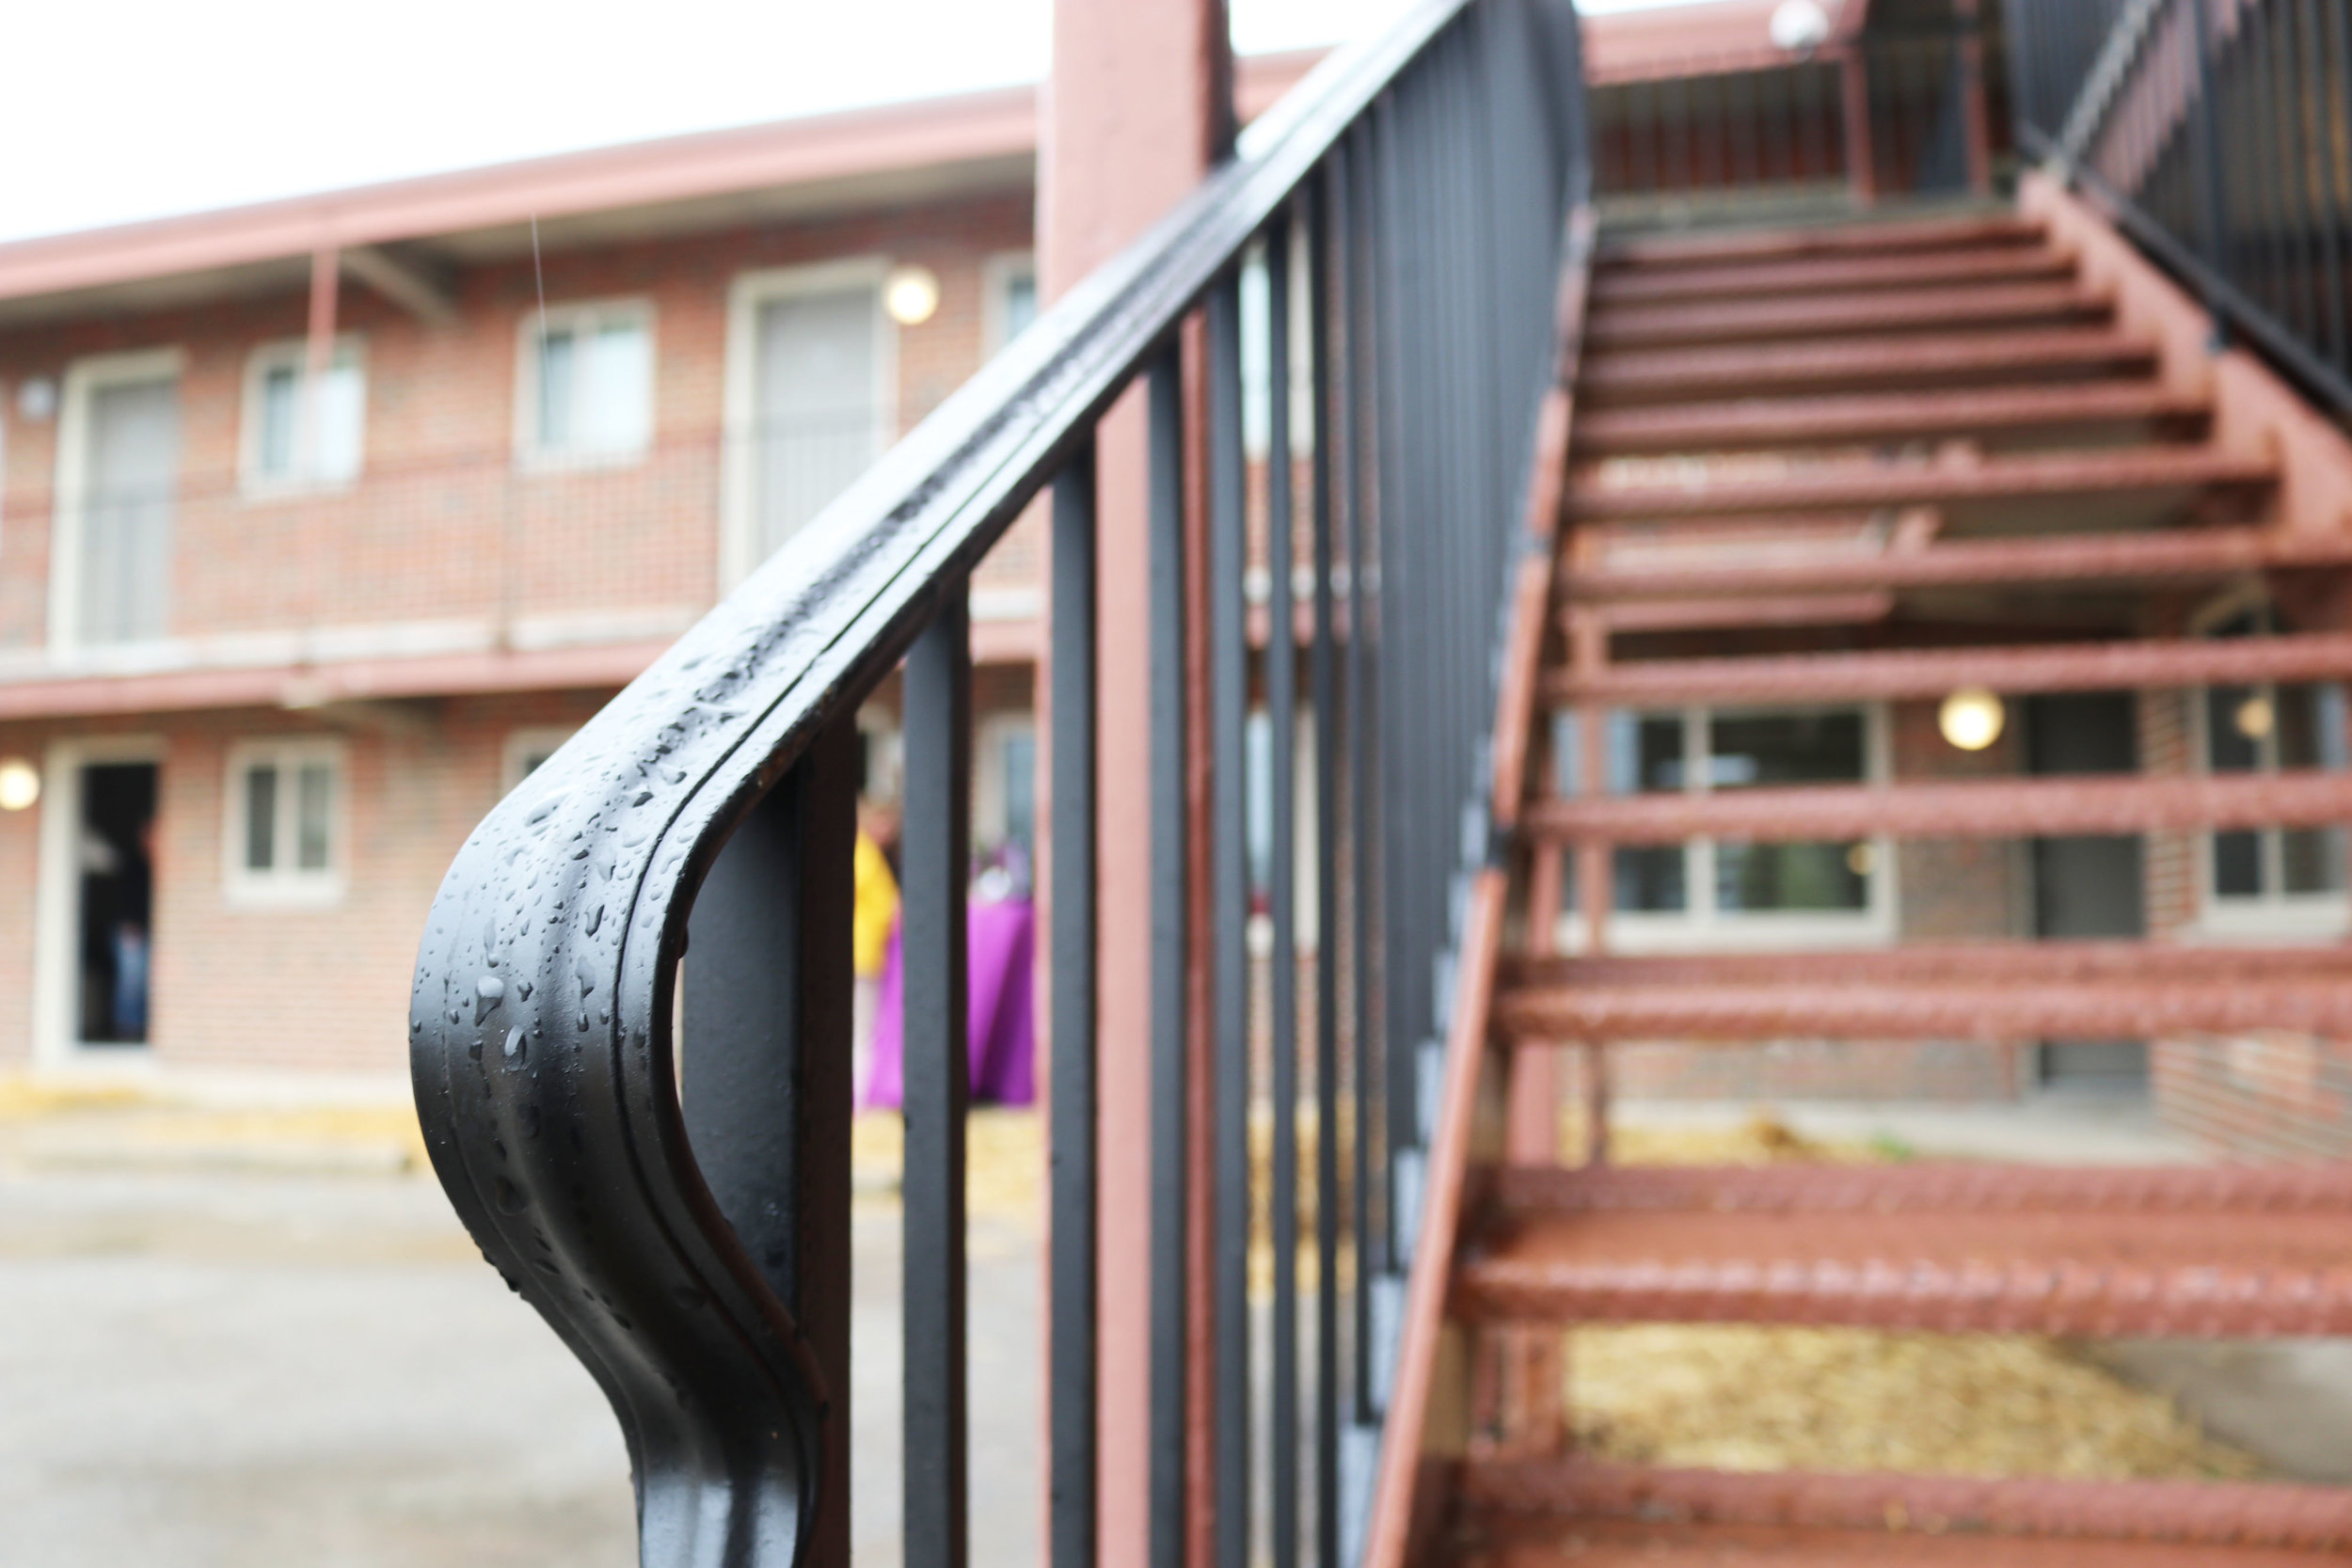 EXTERIOR // AFTER:  New cast iron railings